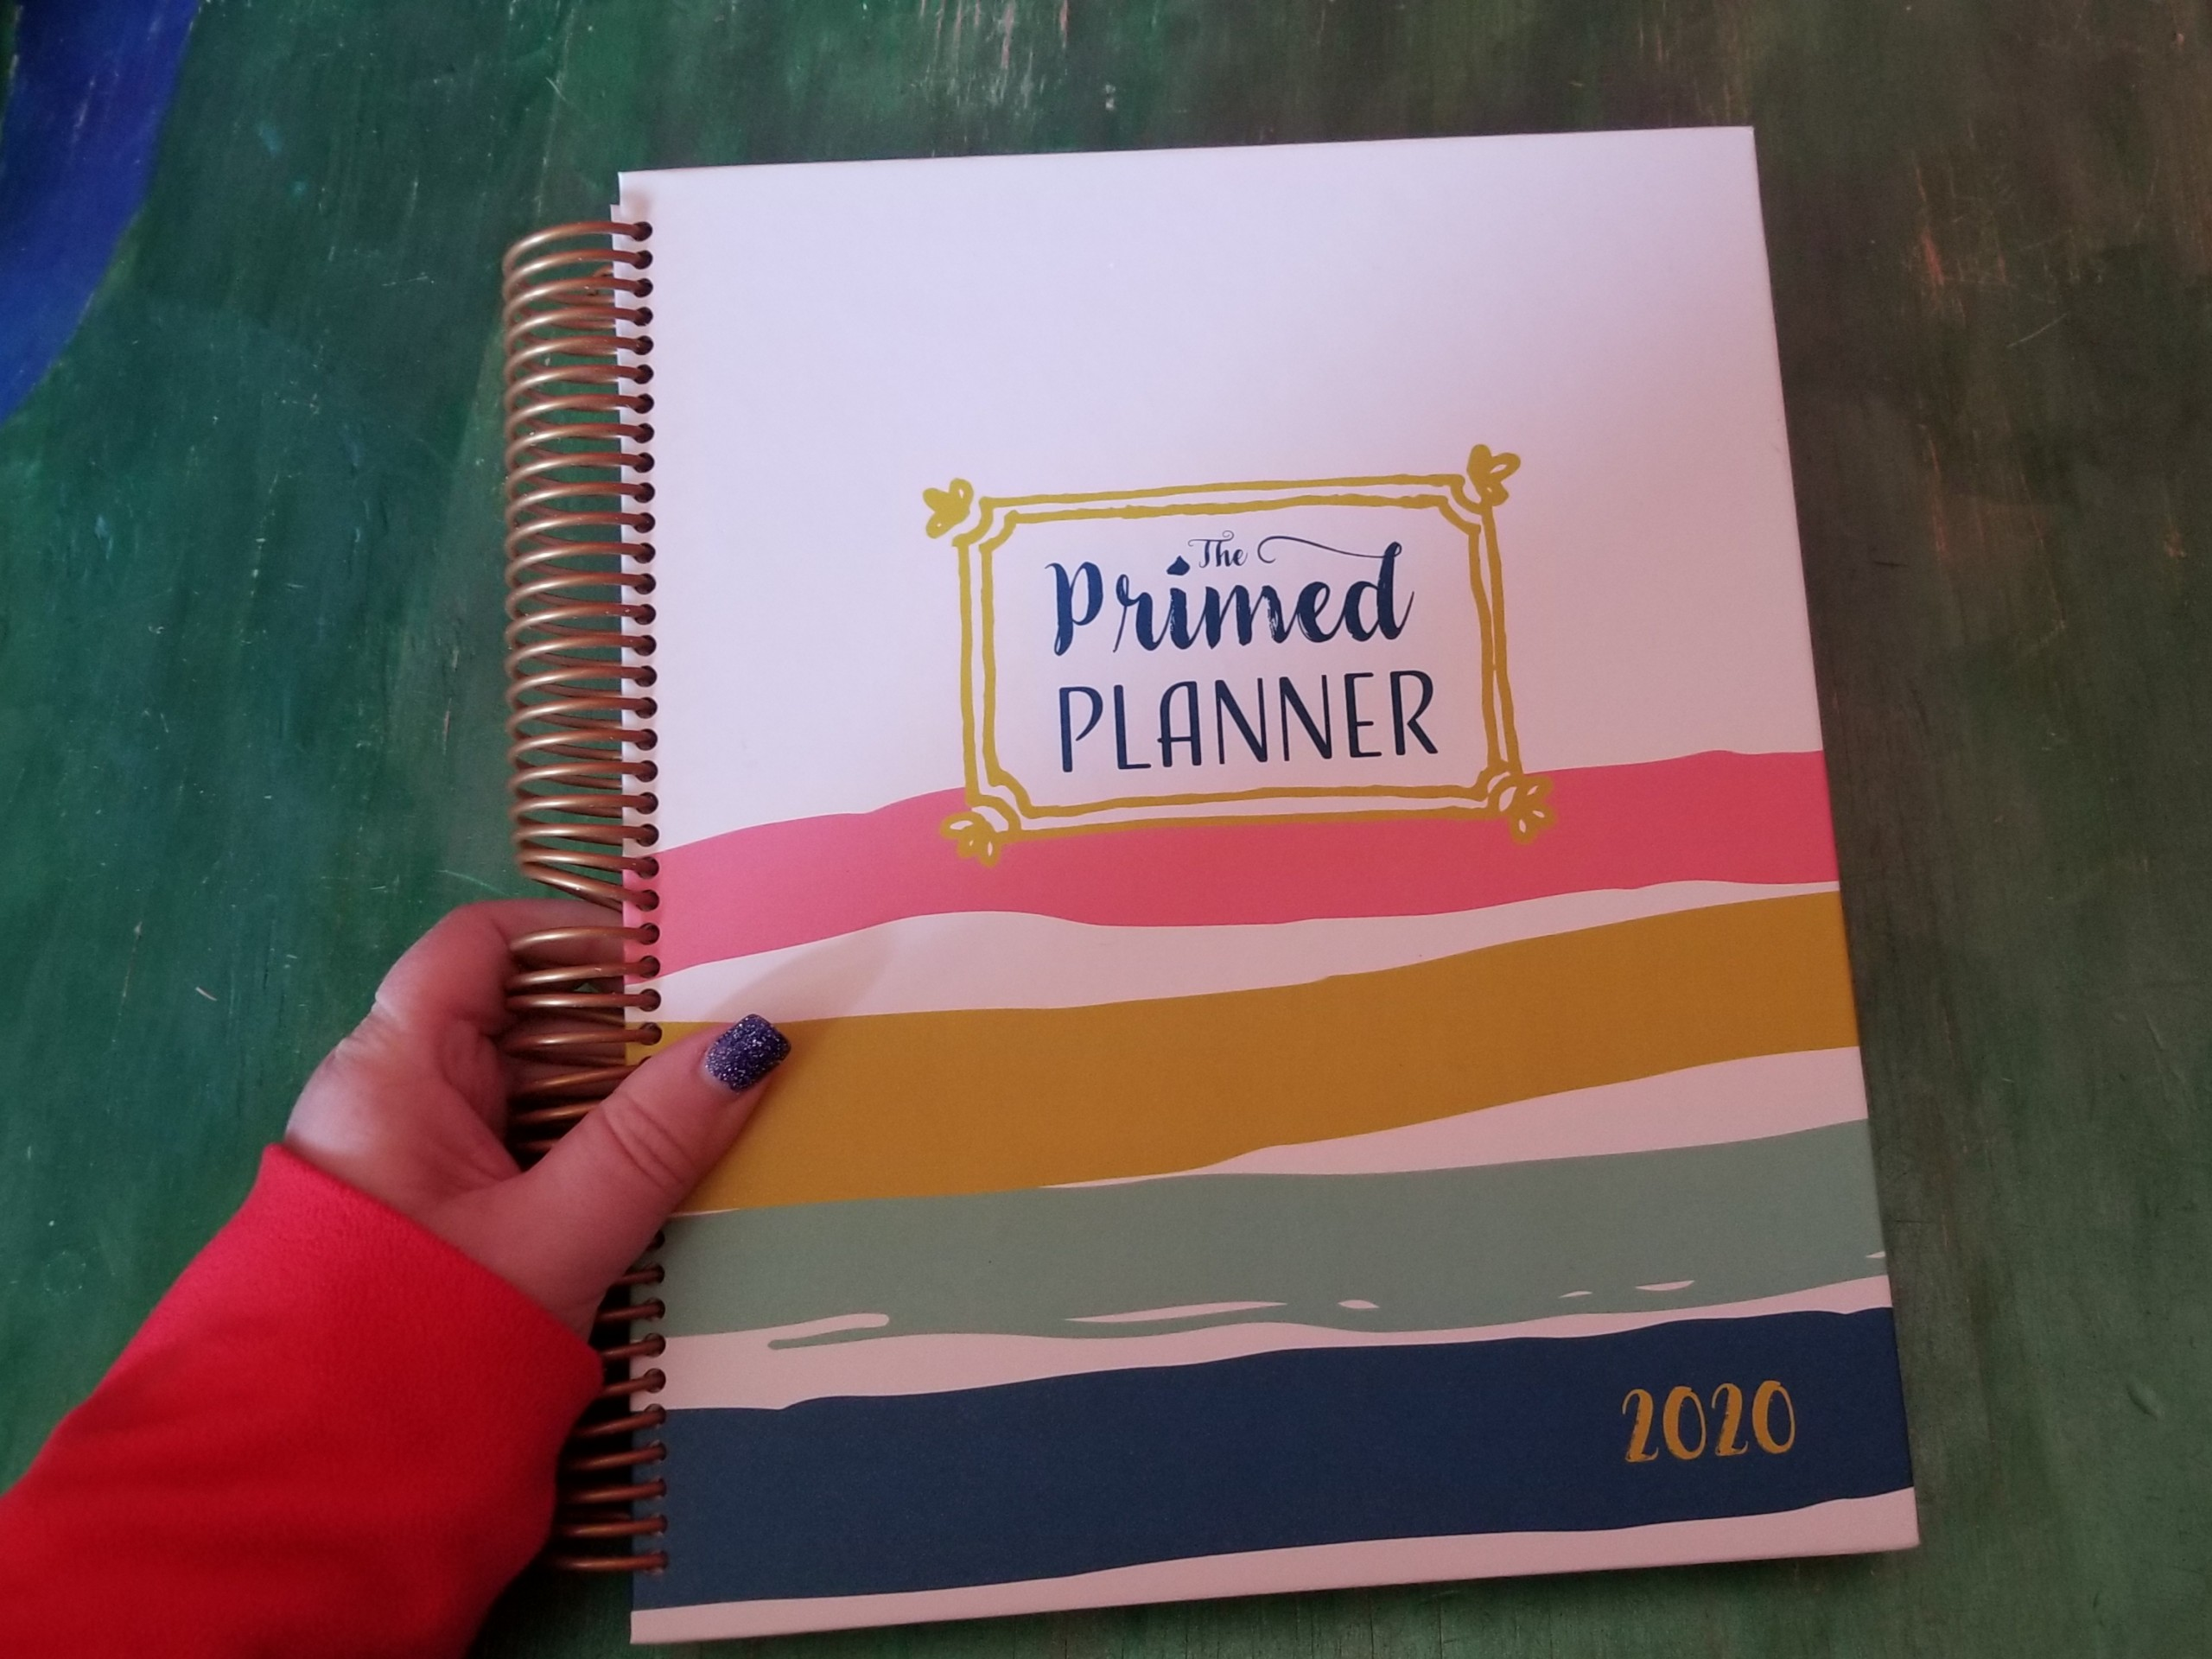 The Primed Planner – review